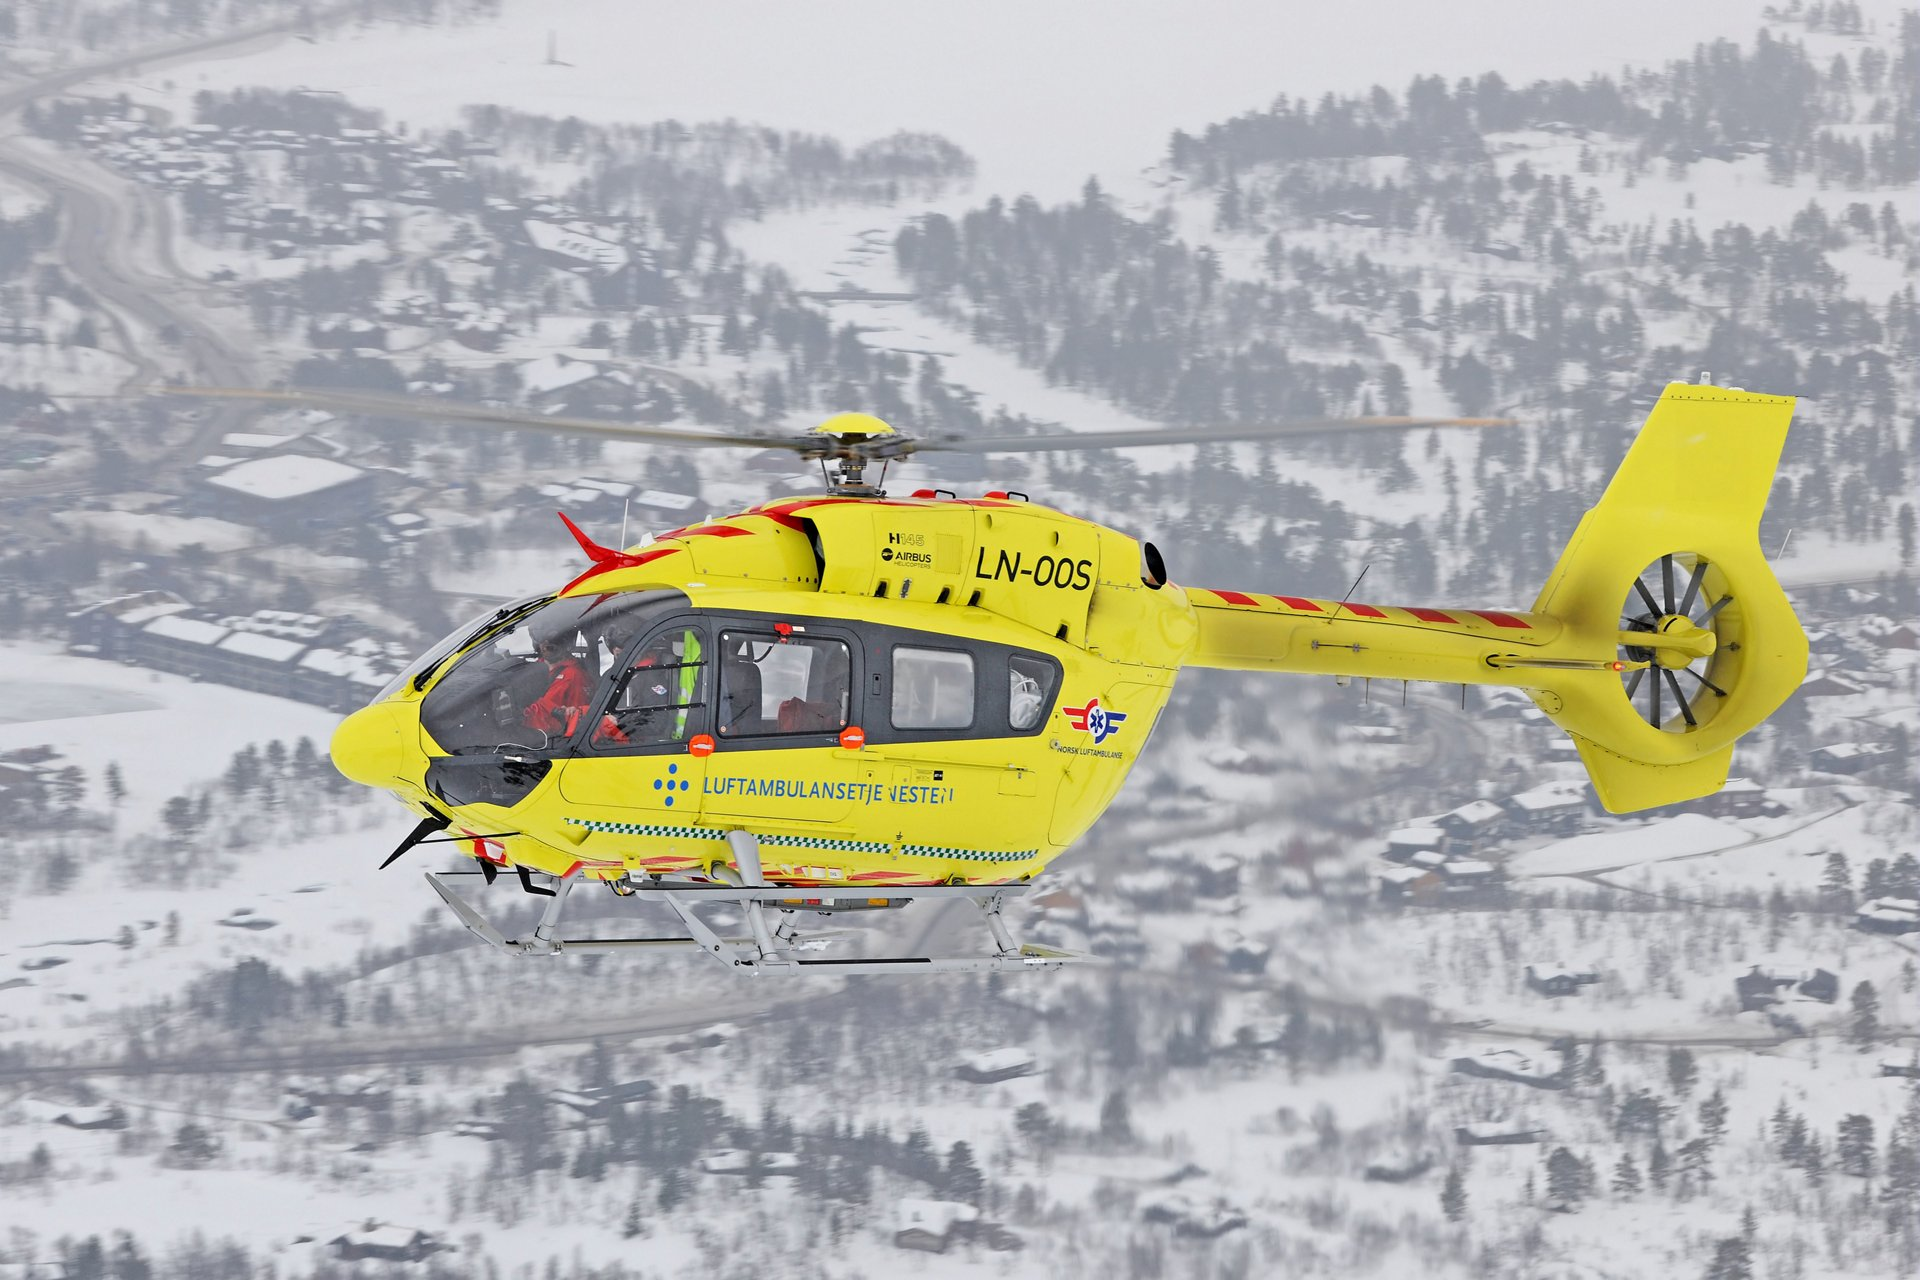 Norwegian Air Ambulance Foundation (NAAF) has become the launch customer in the emergency medical services (EMS) sector for the new H145 helicopter unveiled at the Heli-Expo 2019 exhibition.